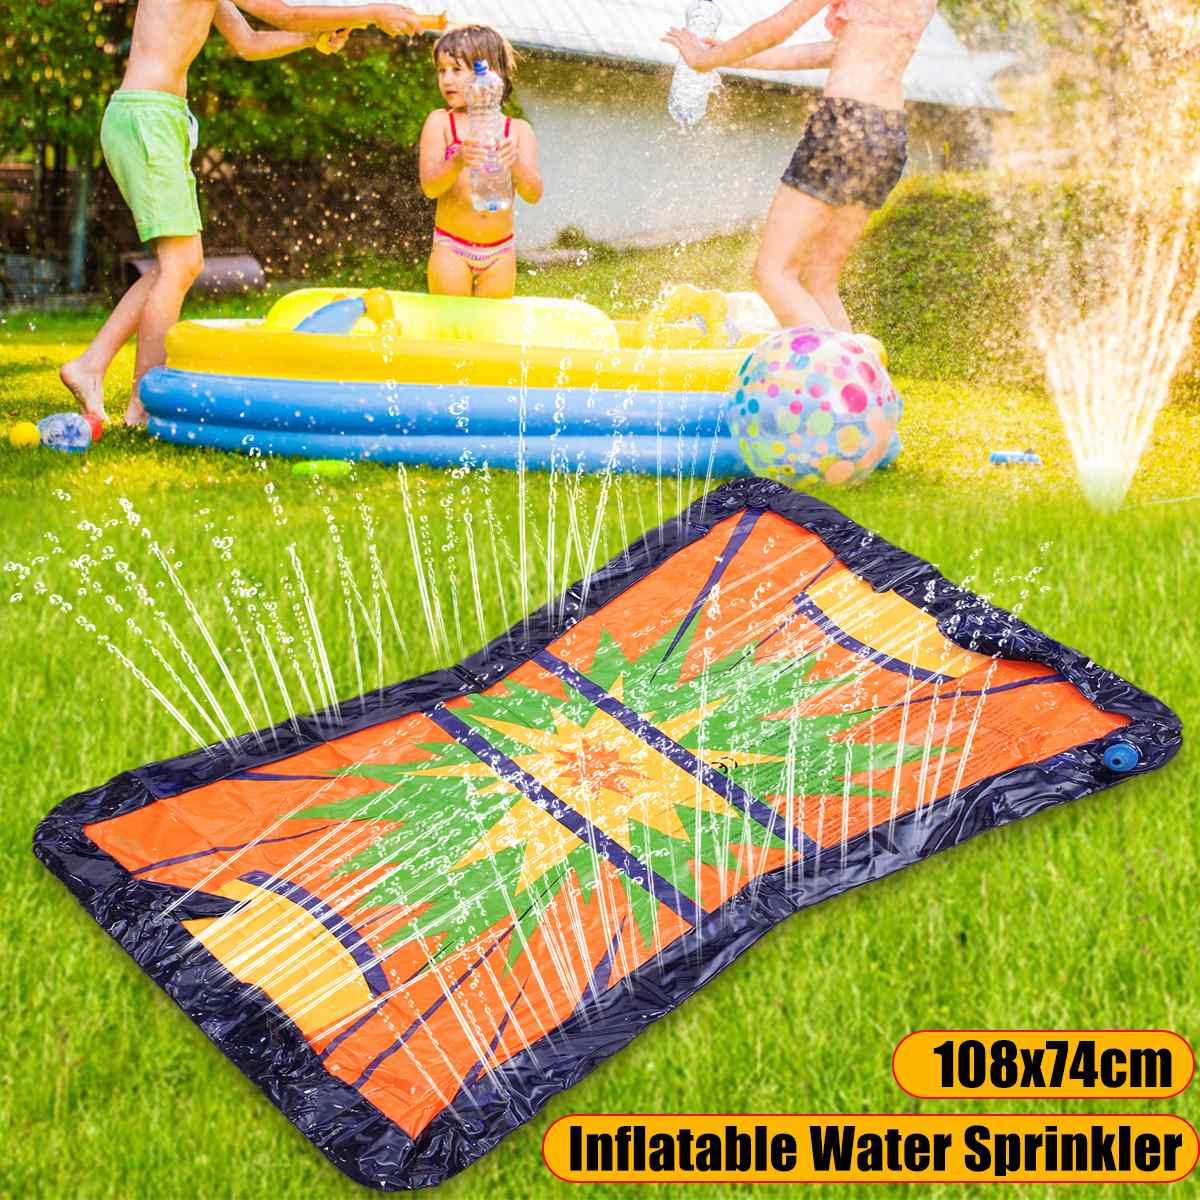 Garden Lawn Water Party Summer Splash Water Sprinkler Kids Toys Inflatable Pool Float Summer Ice Hockey Game Beach Sand Fun Pool